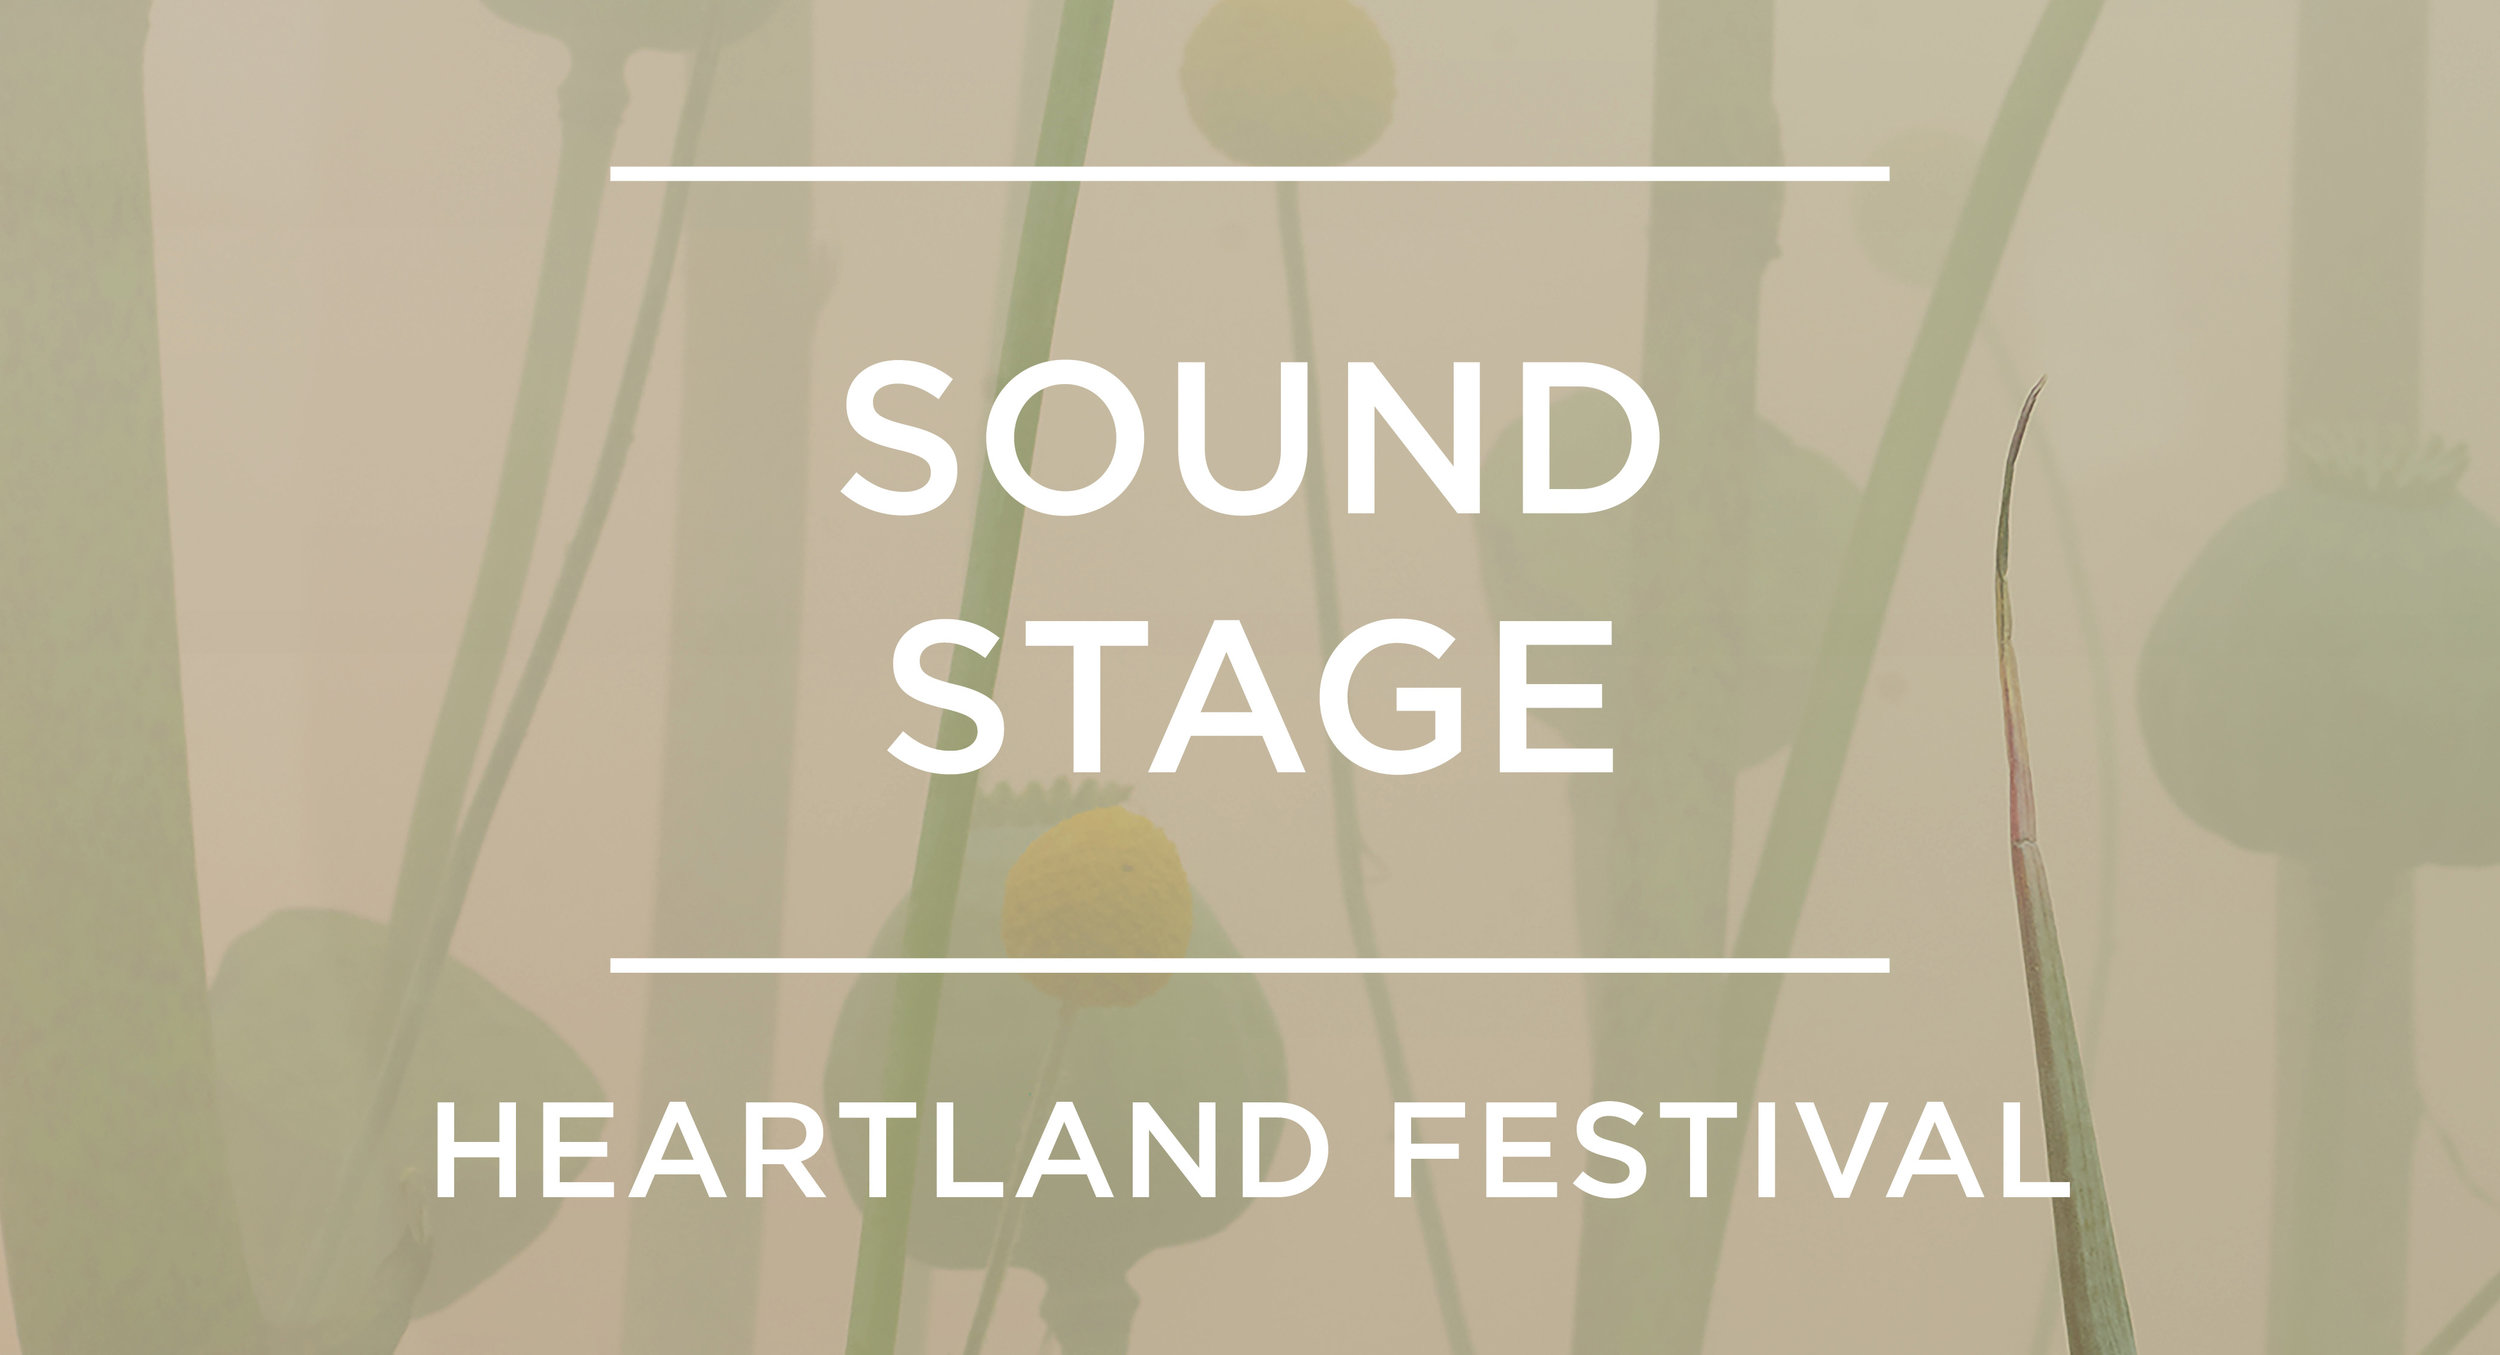 Sound Stage at Heartland Festival